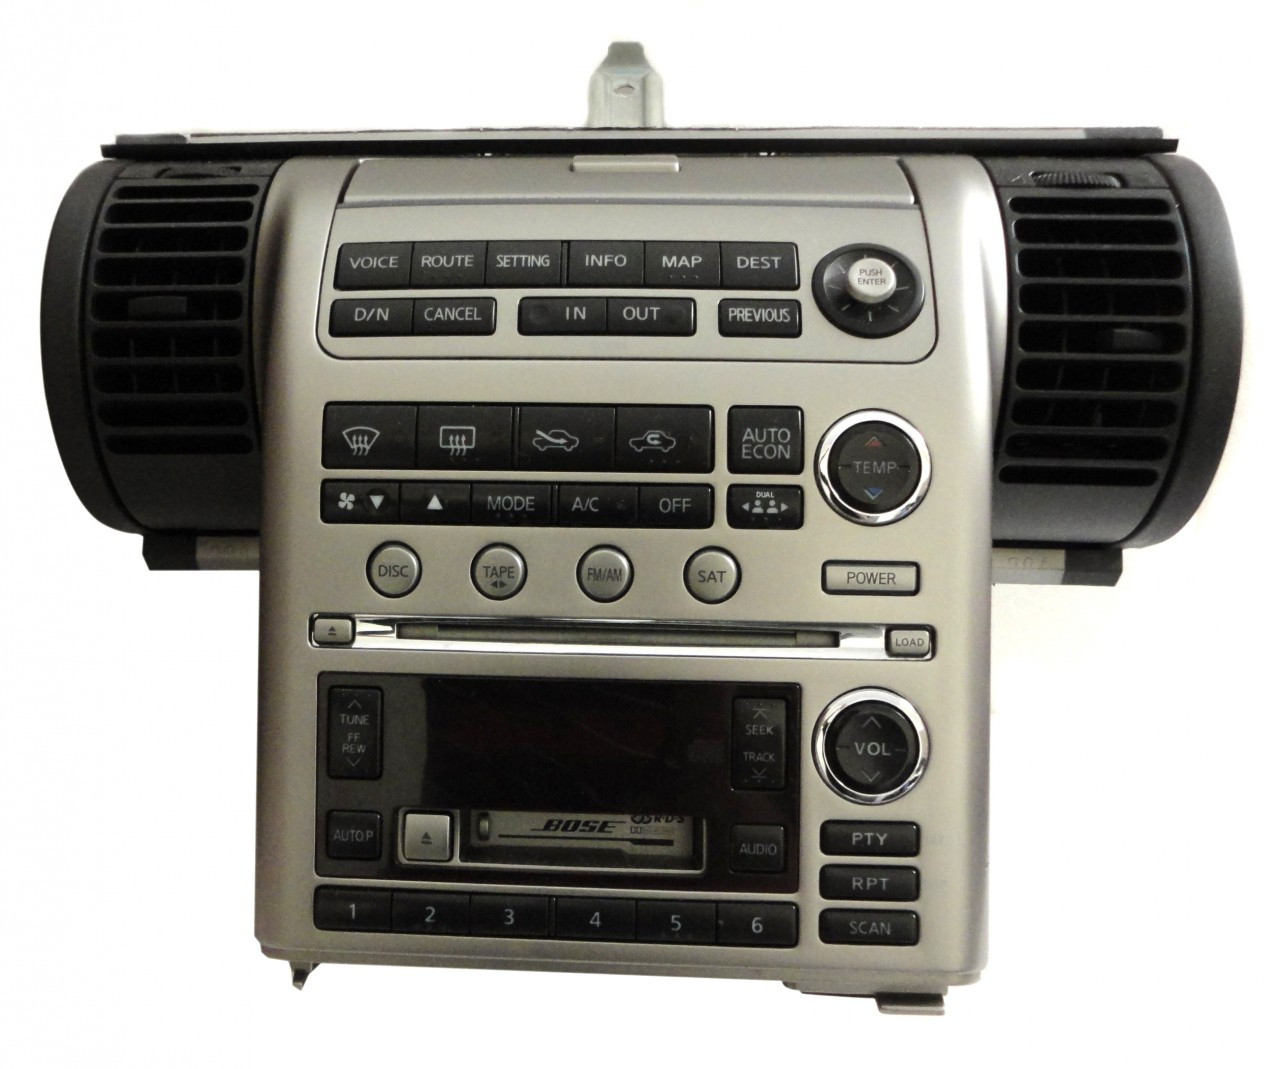 Details about 03 04 INFINITI G-35 Navigation GPS Screen BOSE Radio on